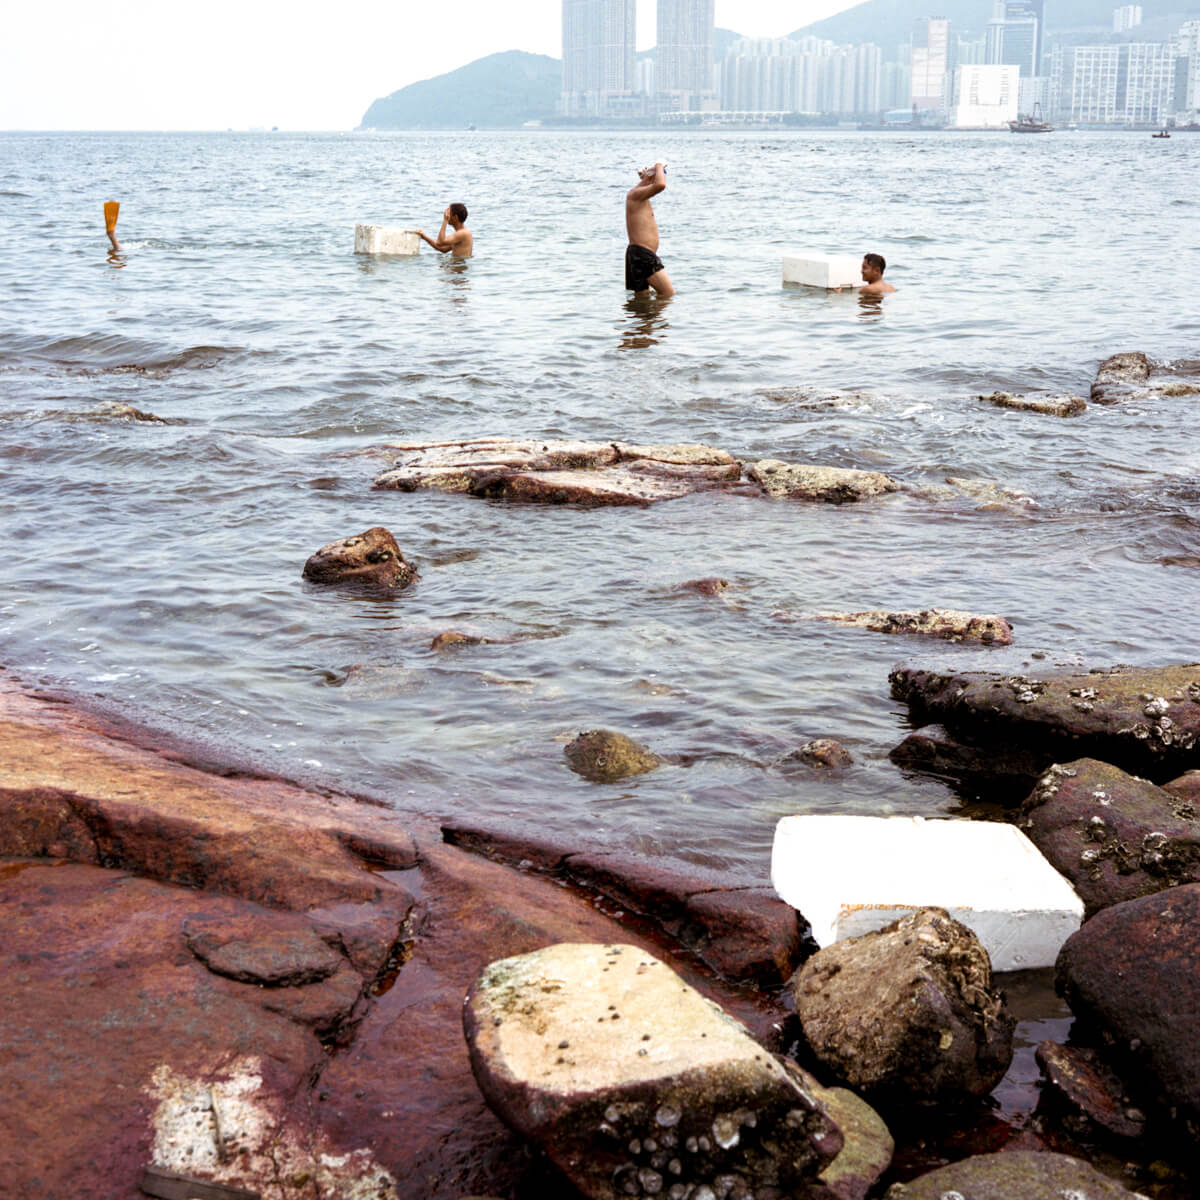 Fishermen-swim-catching-seafood-hong-kong-lei-yu-mun-Mamiya-C330-TLR-medium-format-120-6x6-square-format-Ektar-100-Kodak-sea